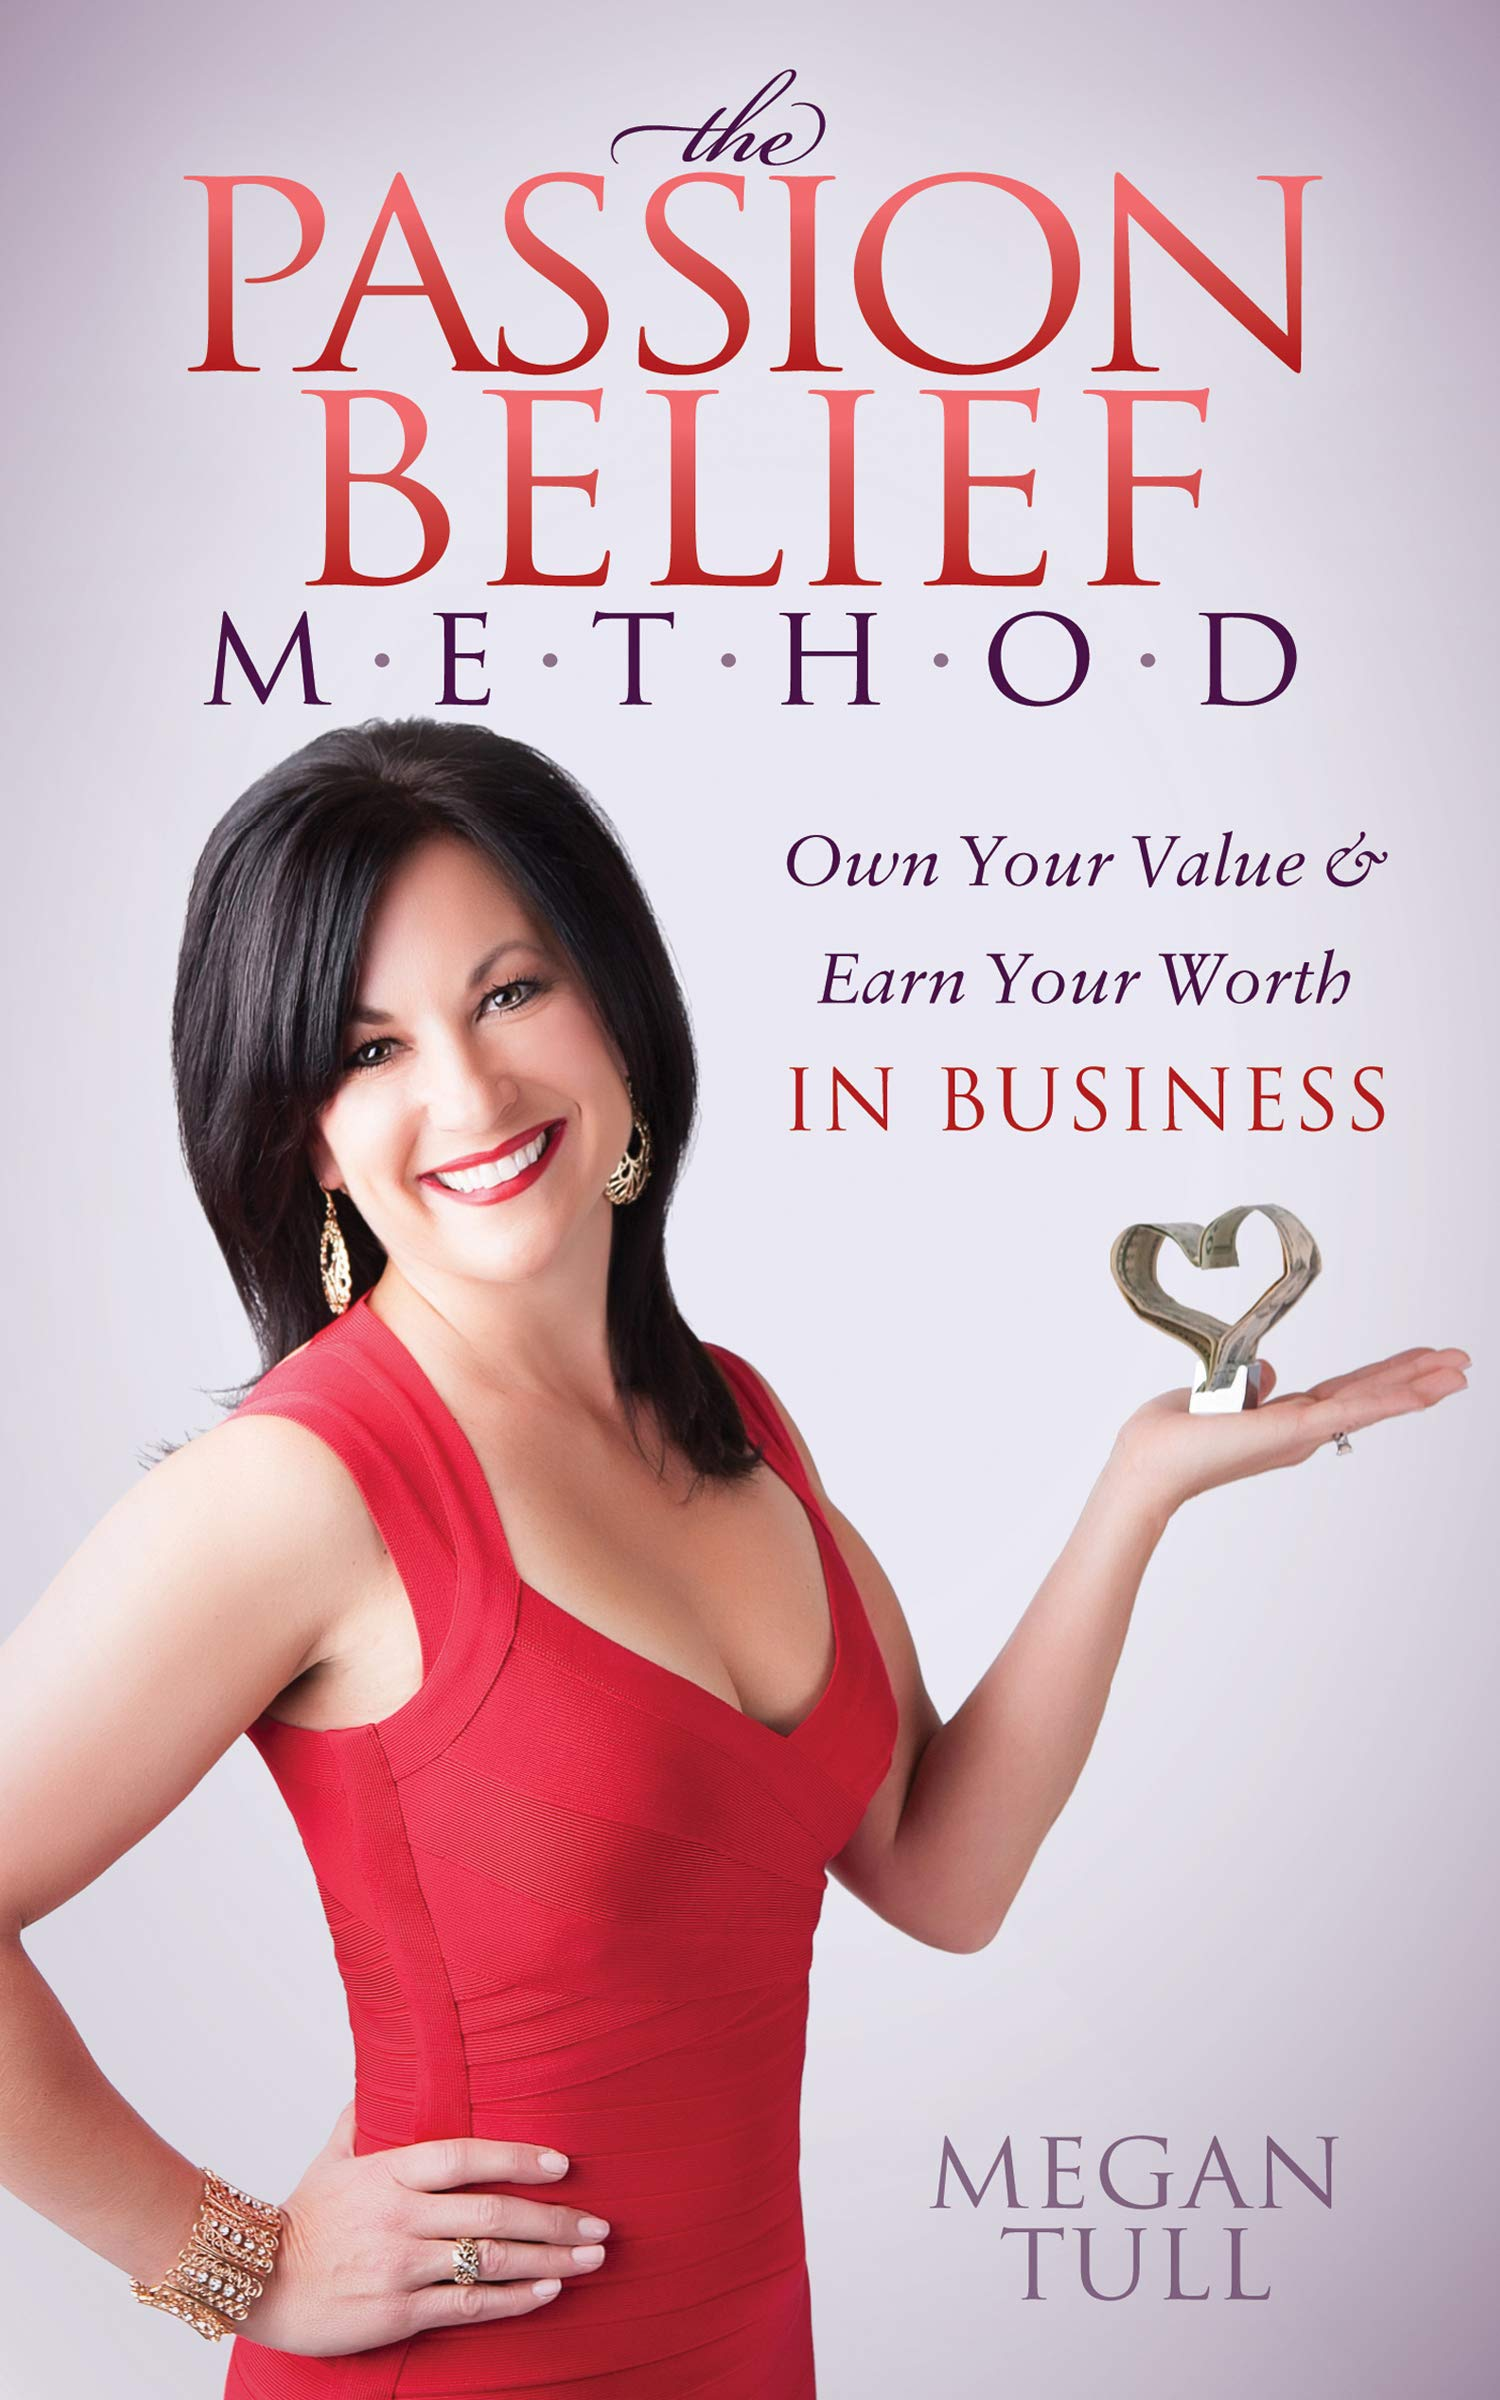 The Passion Belief Method: Own Your Value & Earn Your Worth in Business